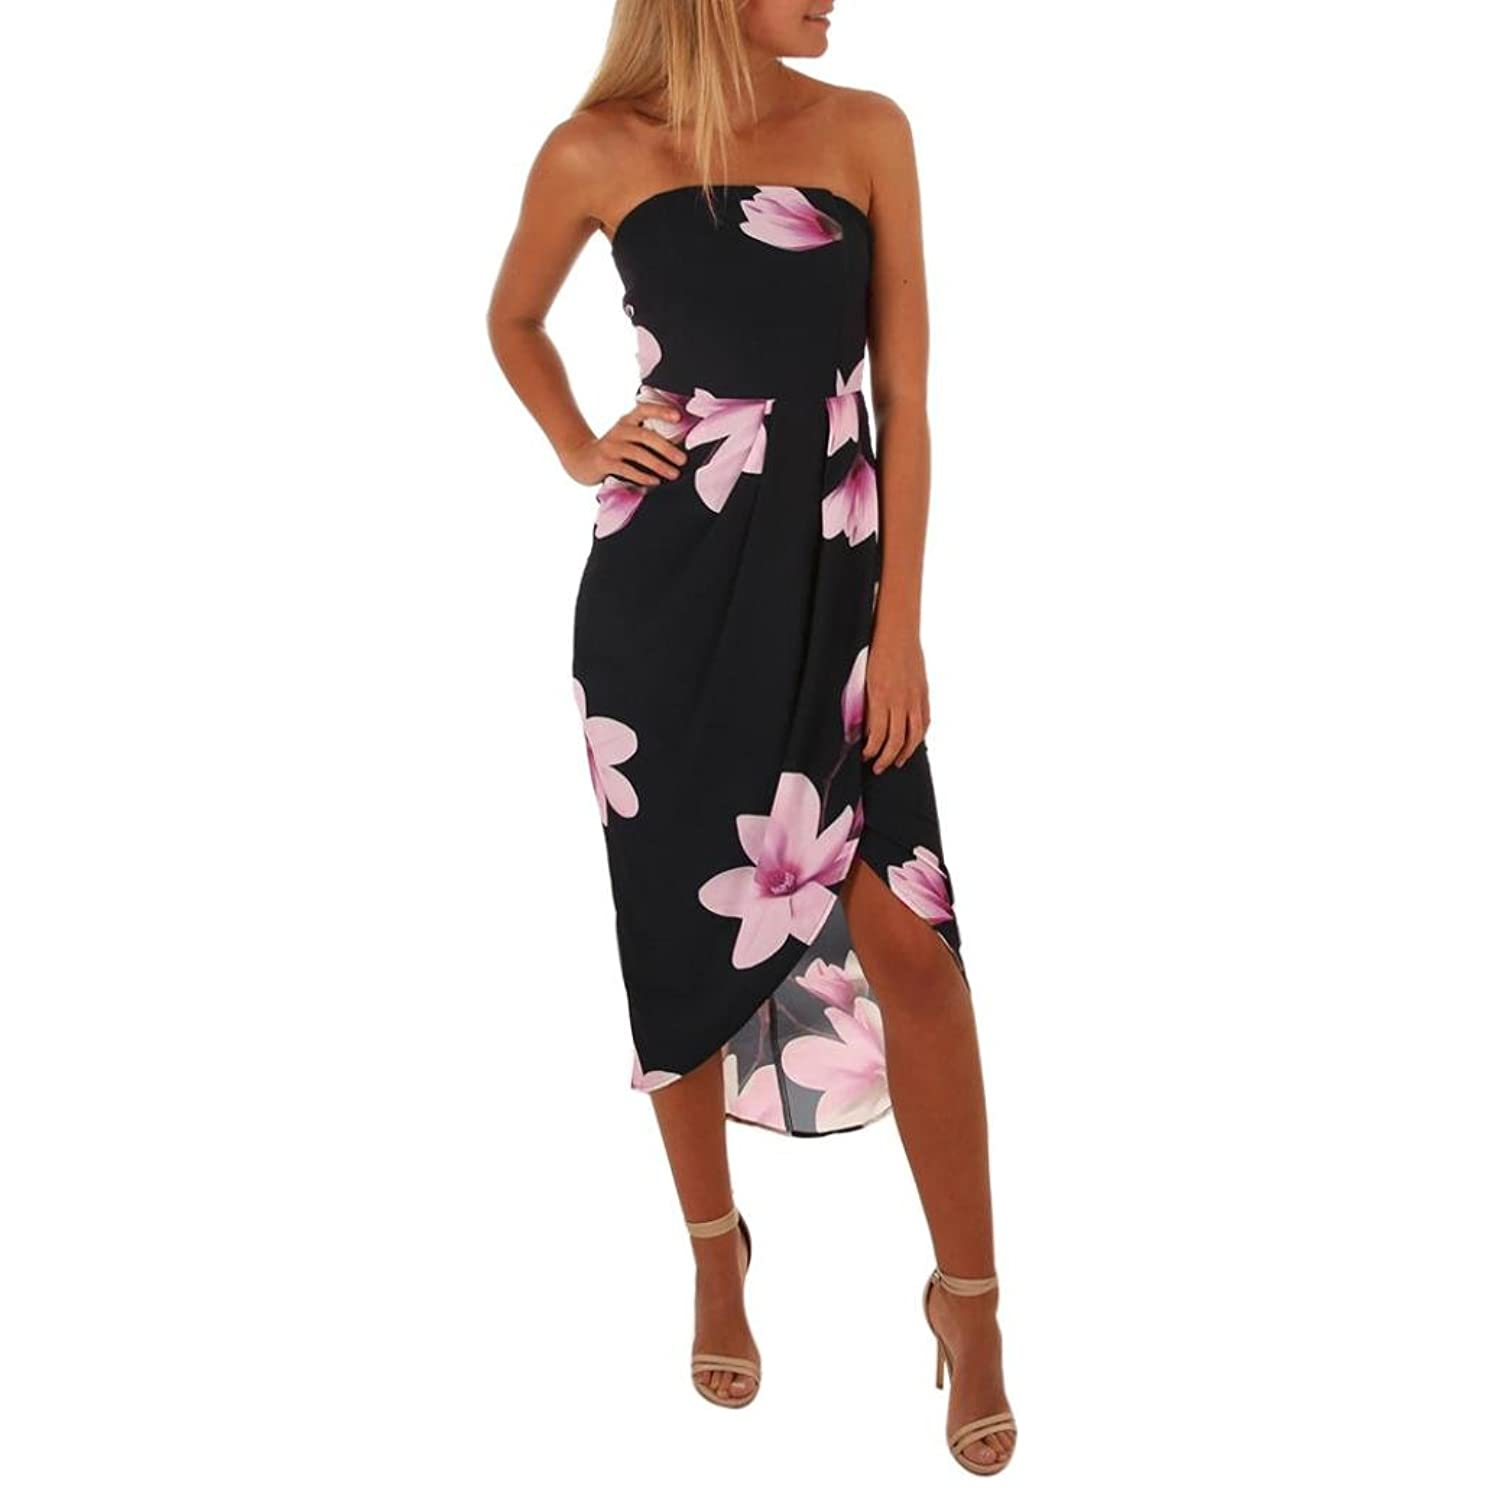 ff15e0880fb ♡ღSeason Four season----Womens Dresses Casual Floral Print Long Sleeve  Swing Pleated Skater A Line Mini Dress Women s Sleeveless Deep V Neck  Floral Print ...